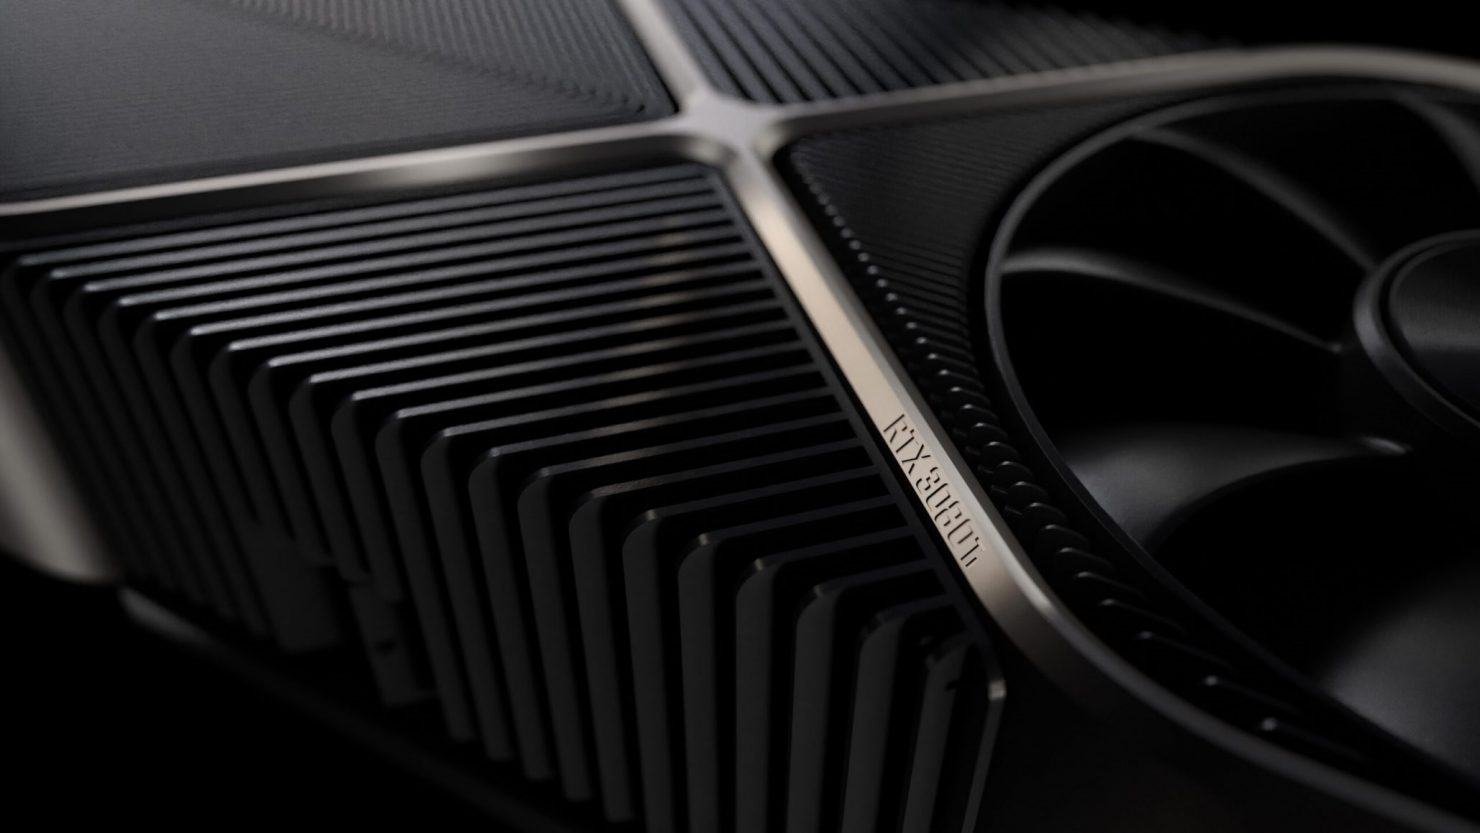 nvidia-geforce-rtx-3080-ti-specifications-confirmed-amp-founders-editionhellip